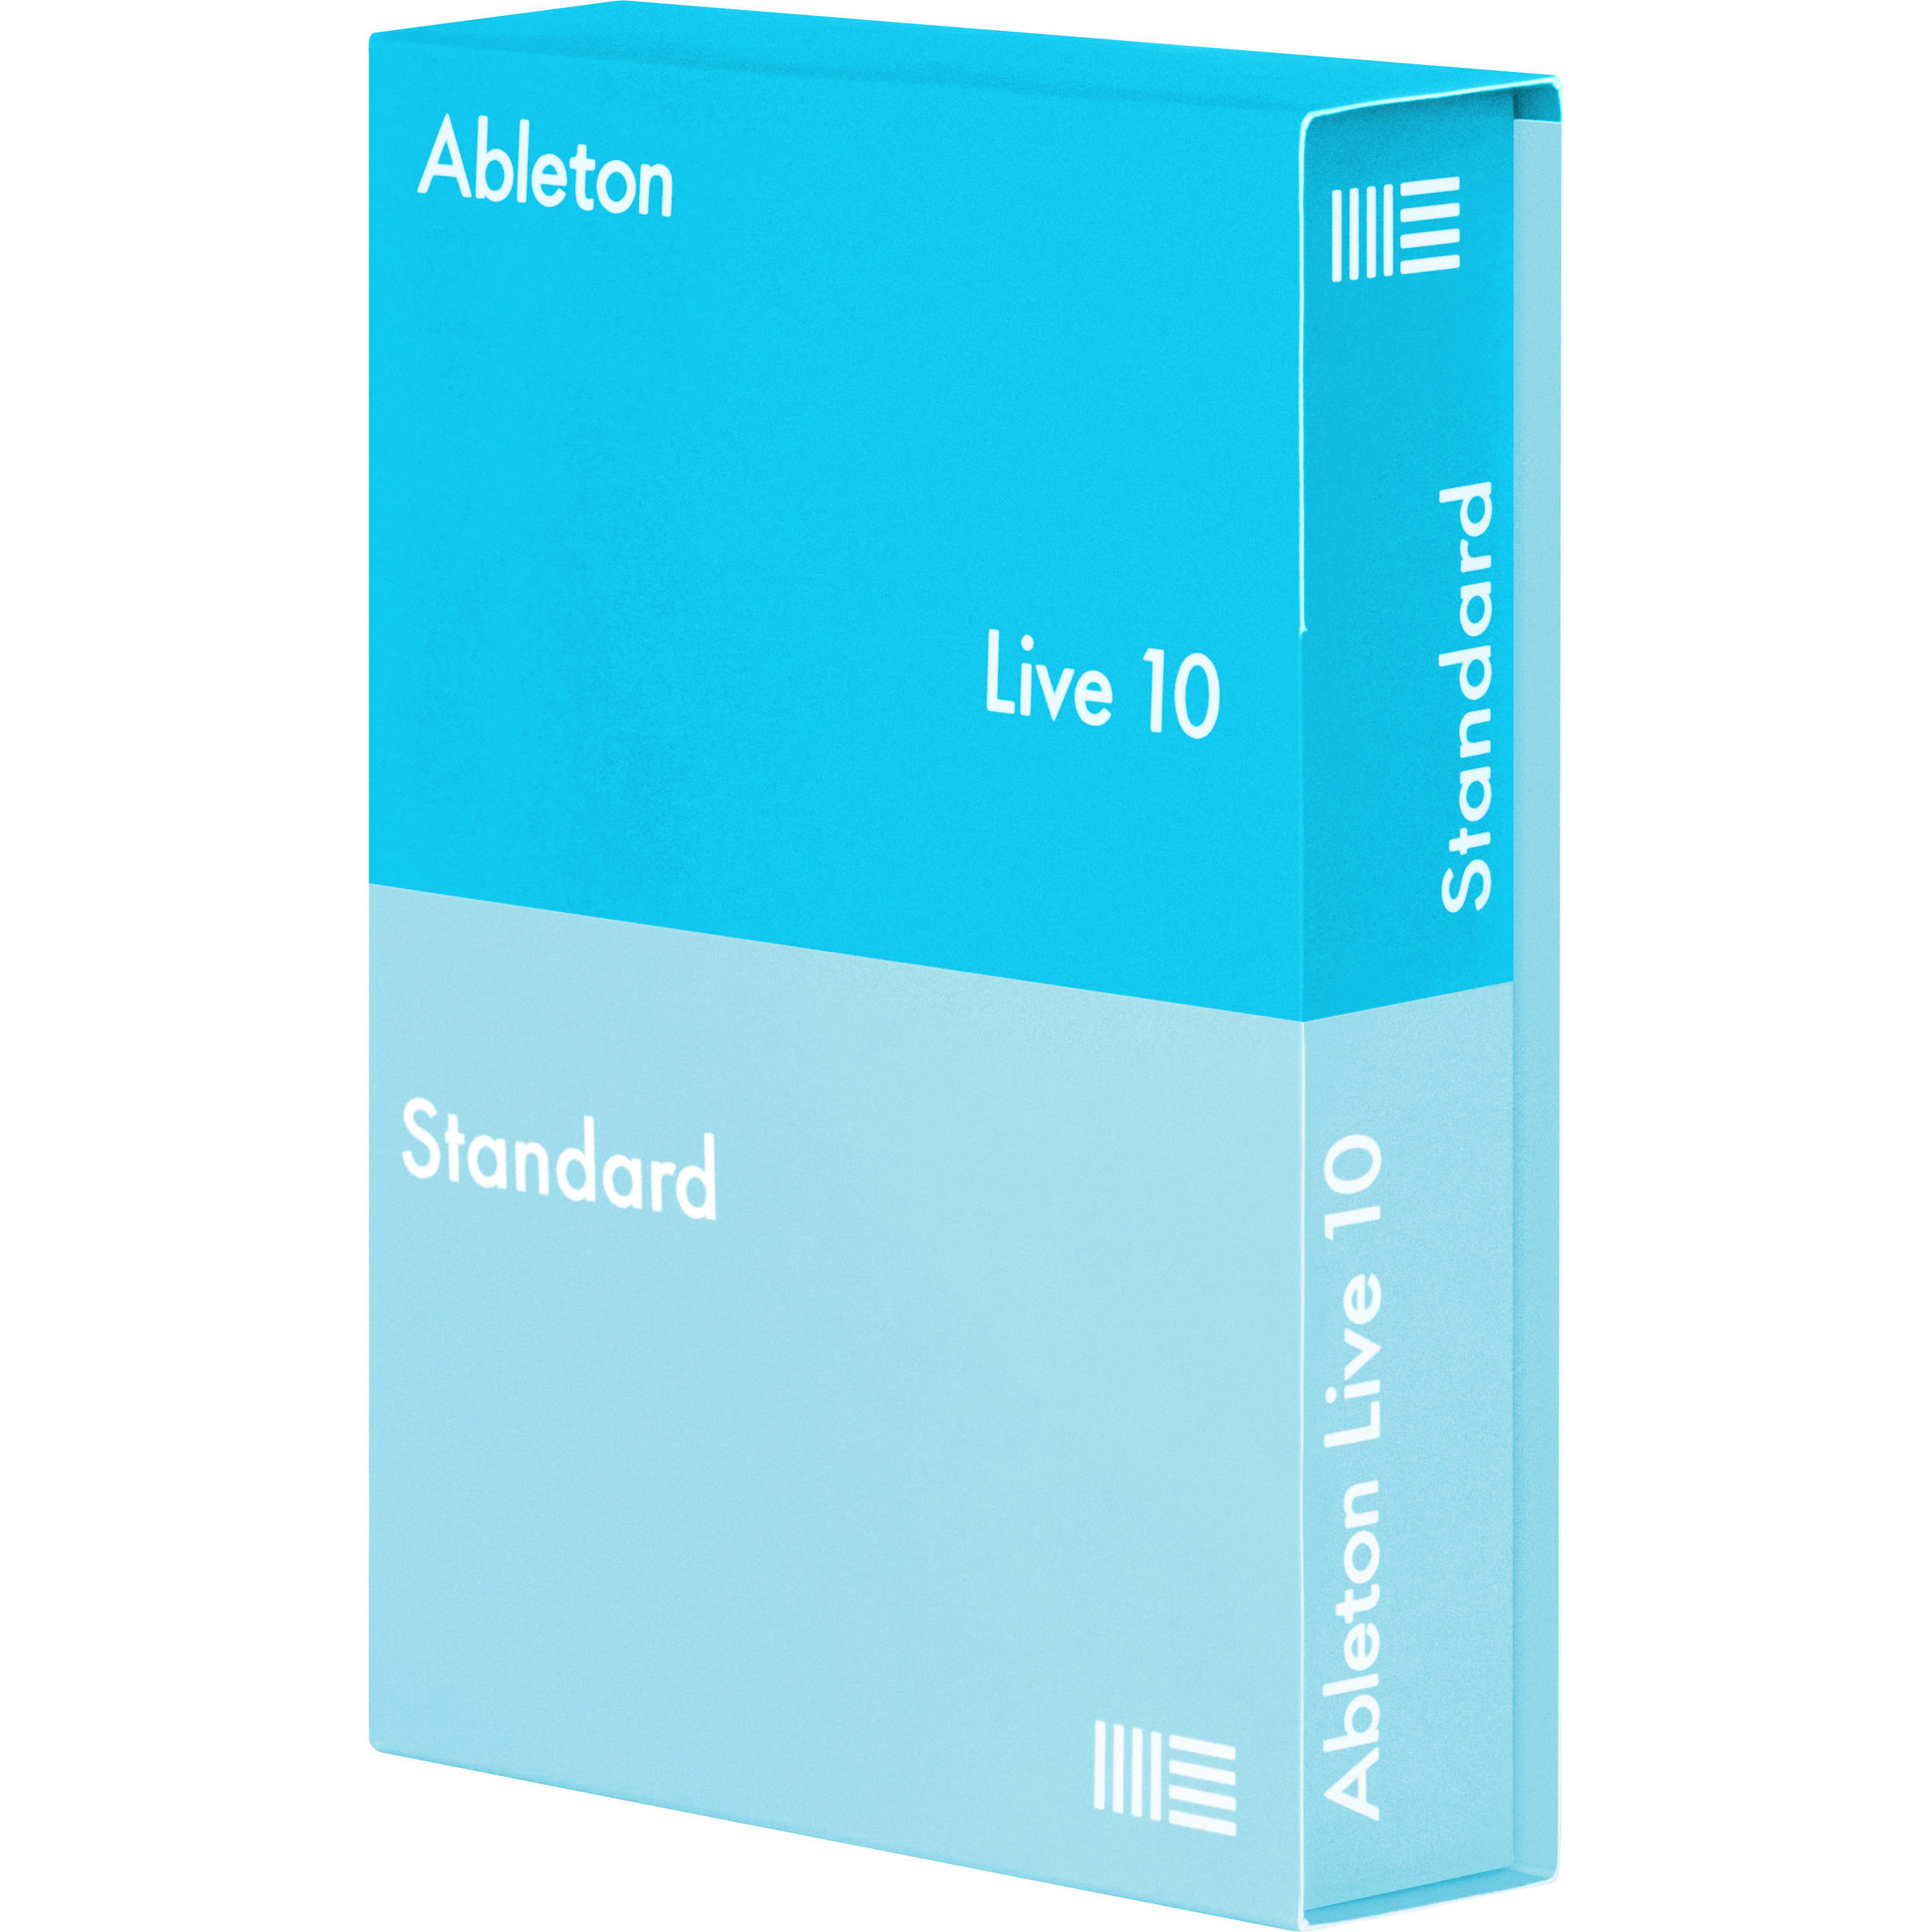 Ableton Push 2 Controller Kit with Live 10 1 Standard and Decksaver